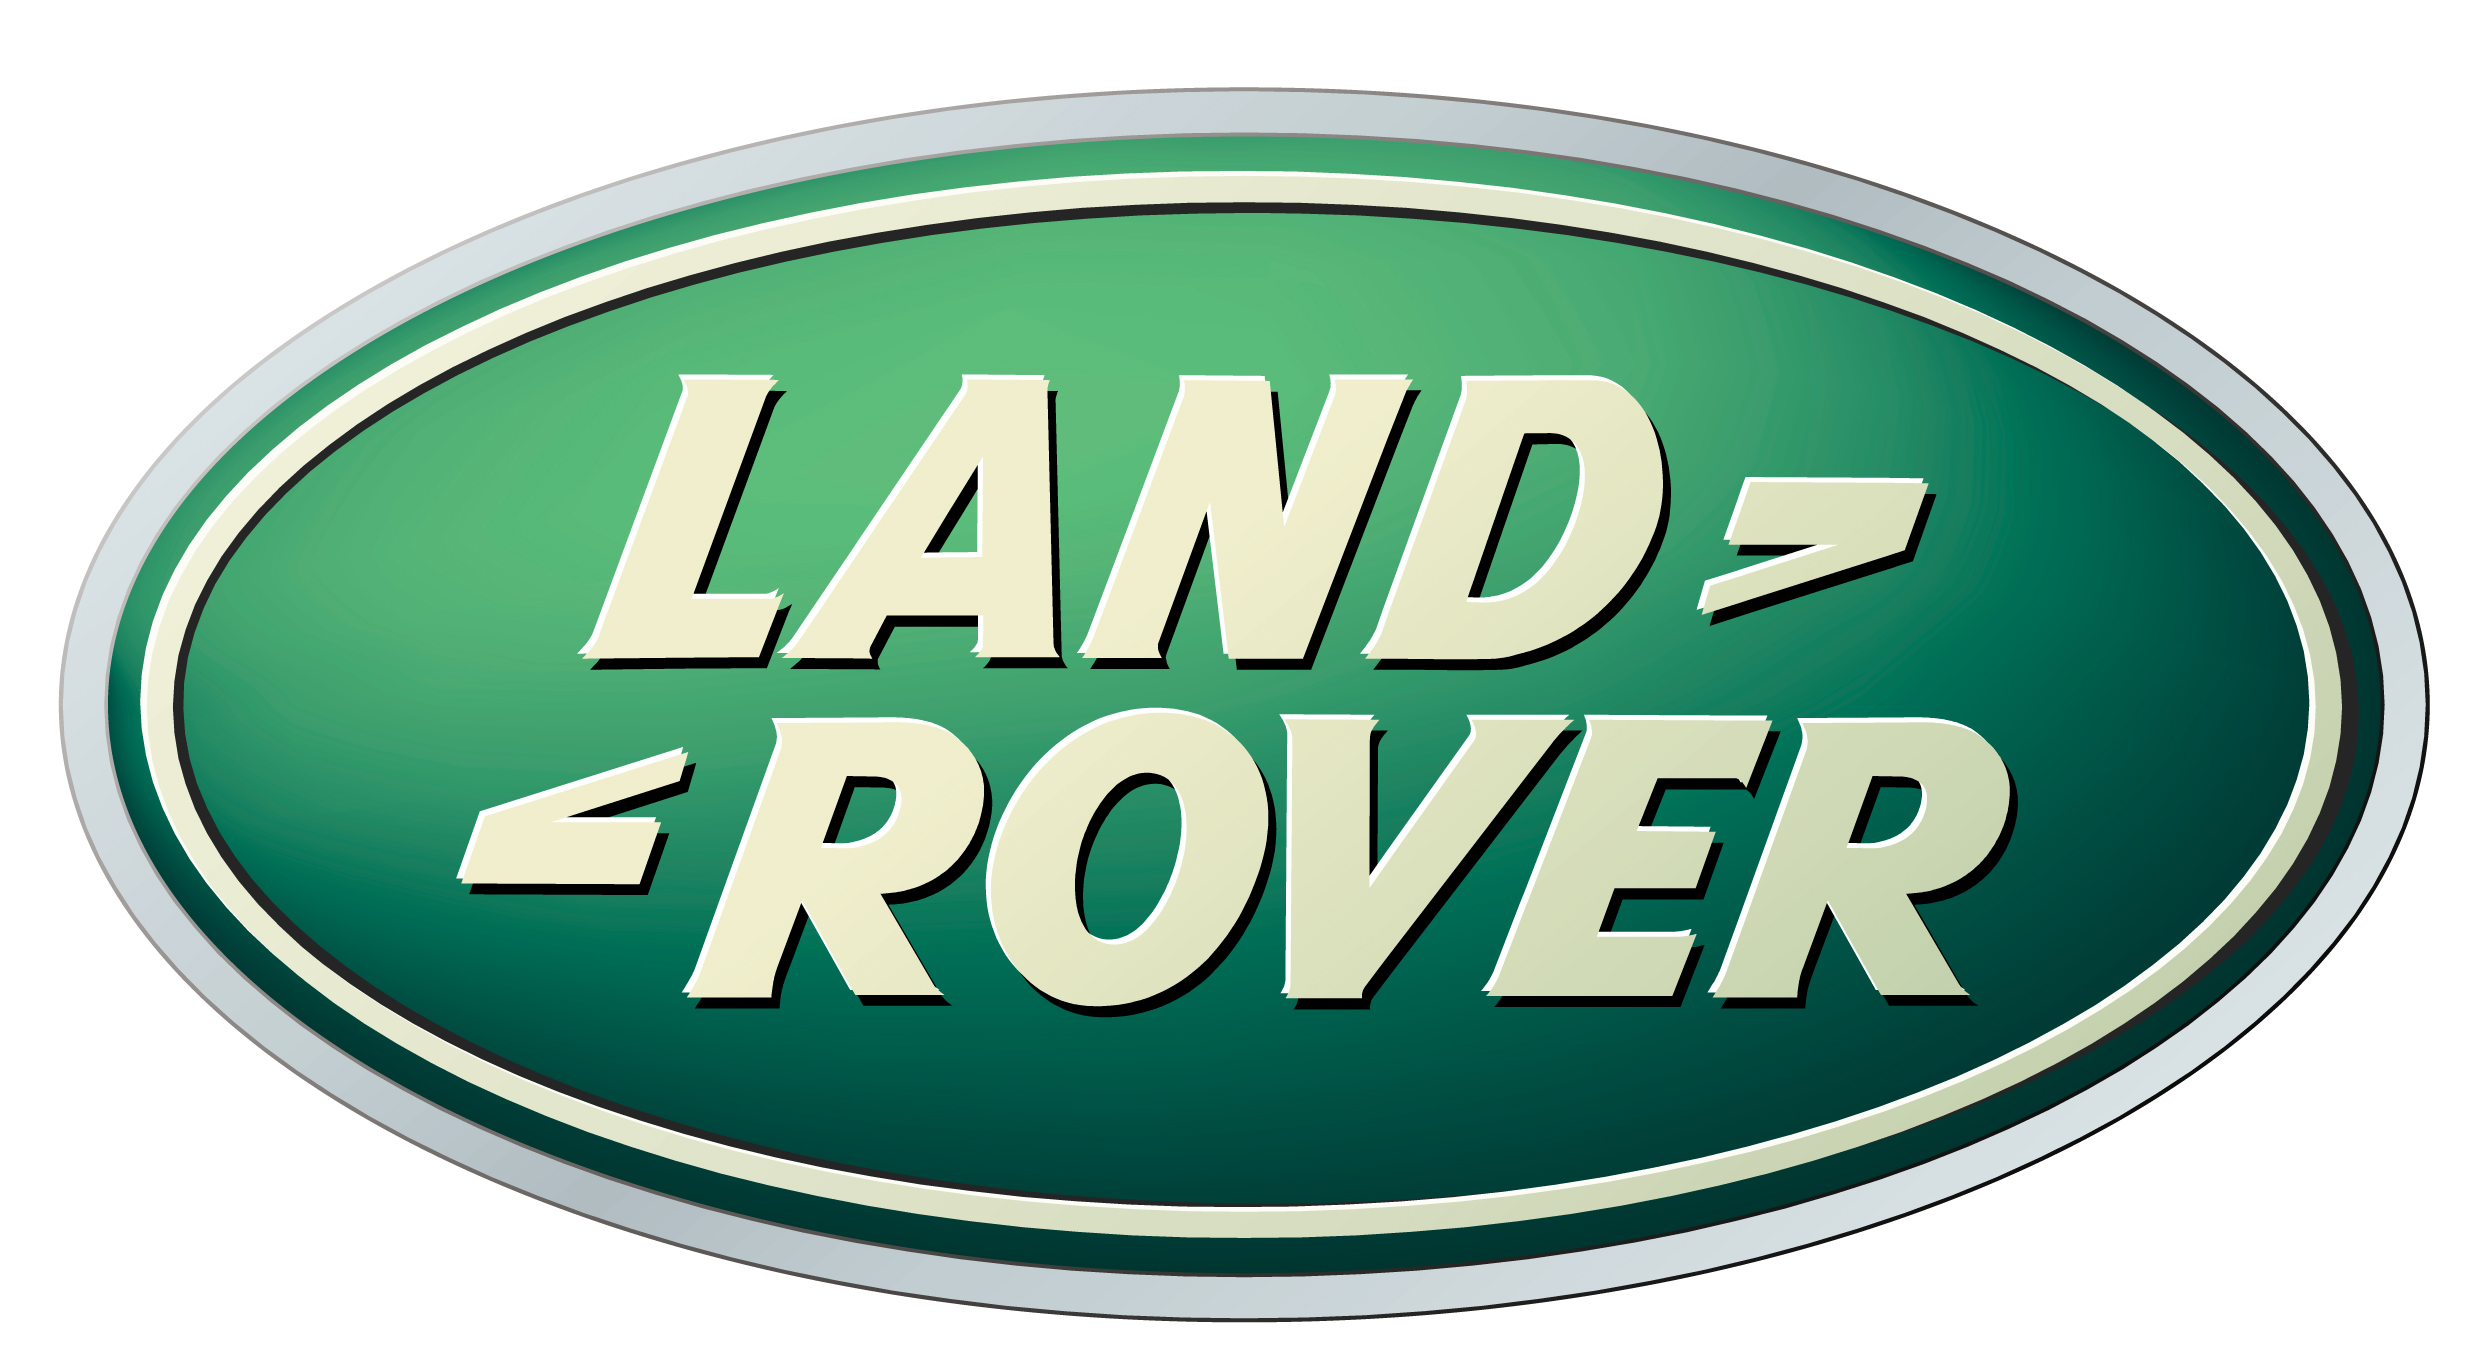 Authorized Collision Repair for Land Rover